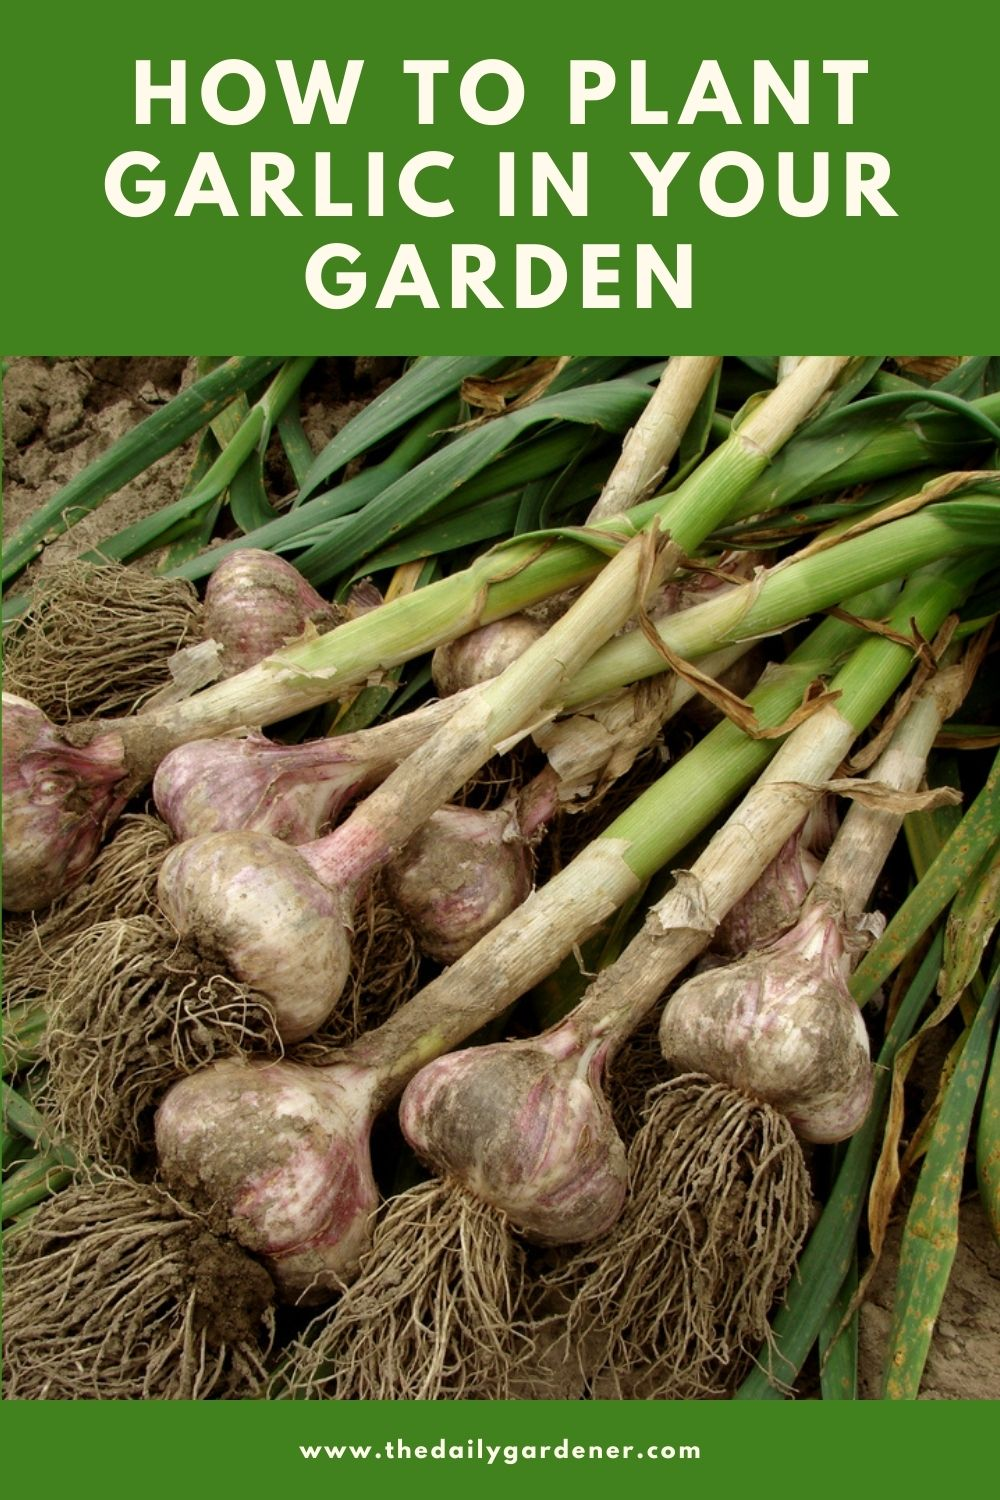 How to Plant Garlic in Your Garden (Tricks to Care!) 1